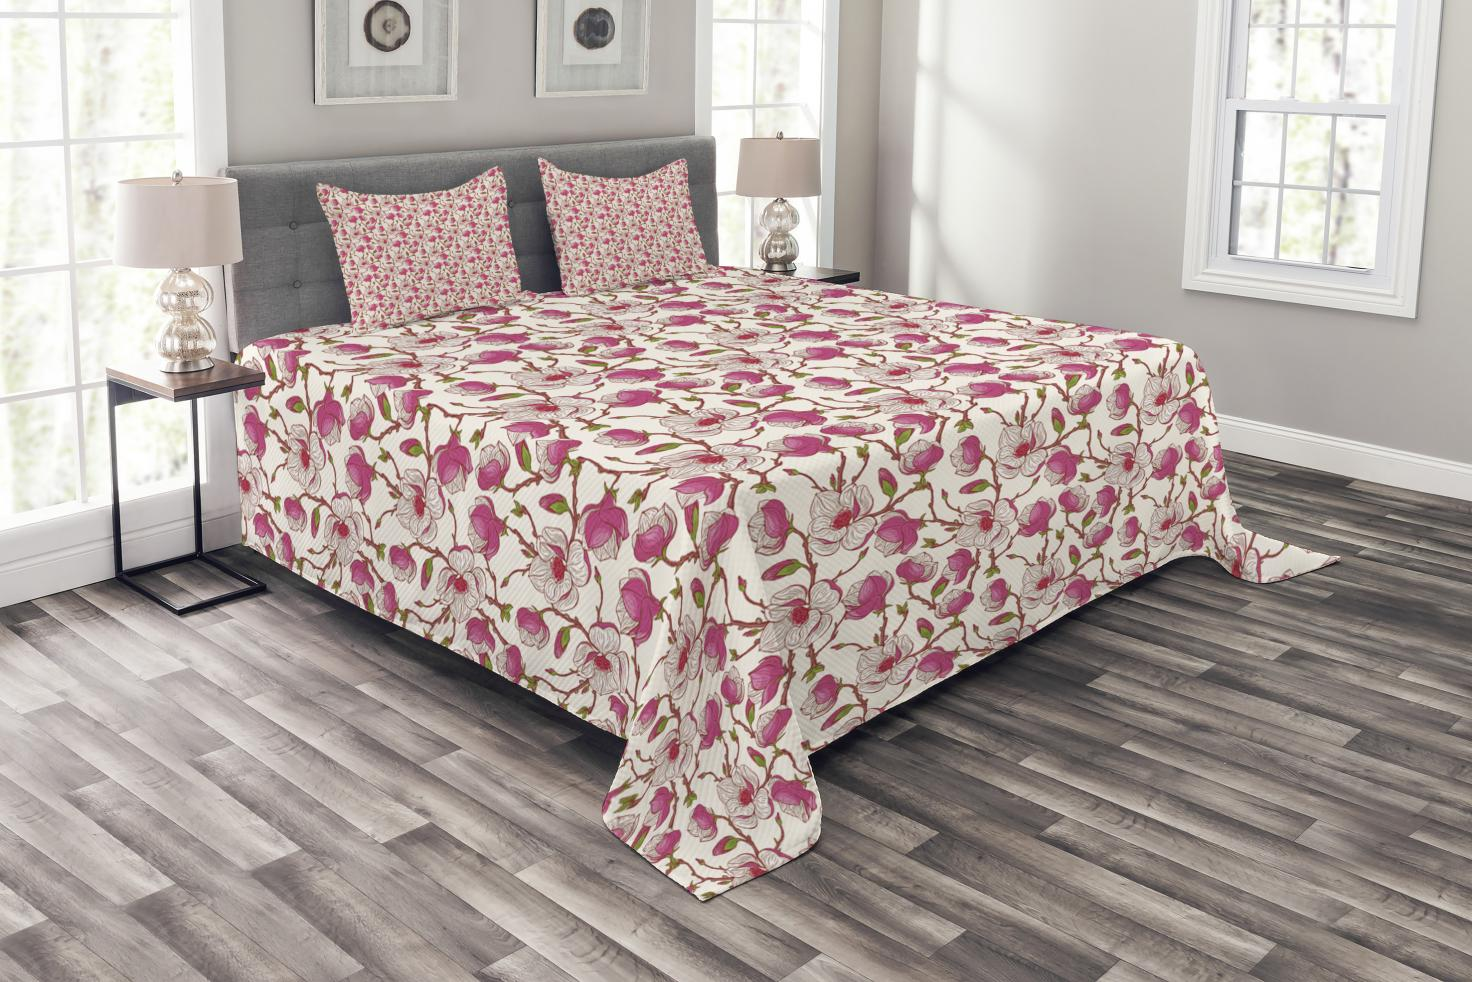 Flower Bedspread Set, Romantic Spring Branches Bursting into Flowers Pink  Magnolia Garden Botany, Decorative Quilted Coverlet Set with Pillow Shams  ...